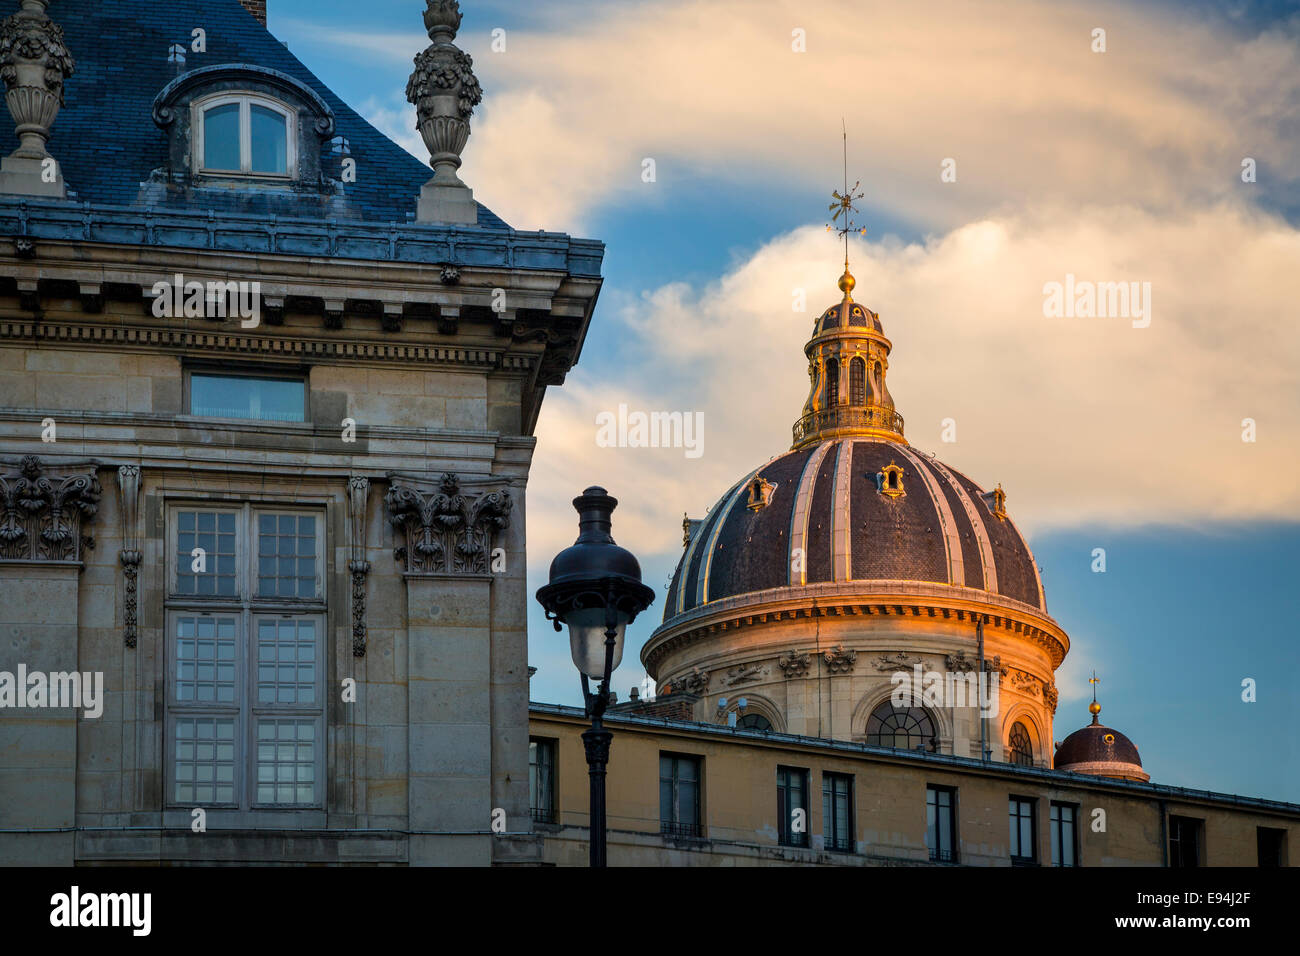 Setting sunlight on the dome of Academie Francaise, Paris, France - Stock Image